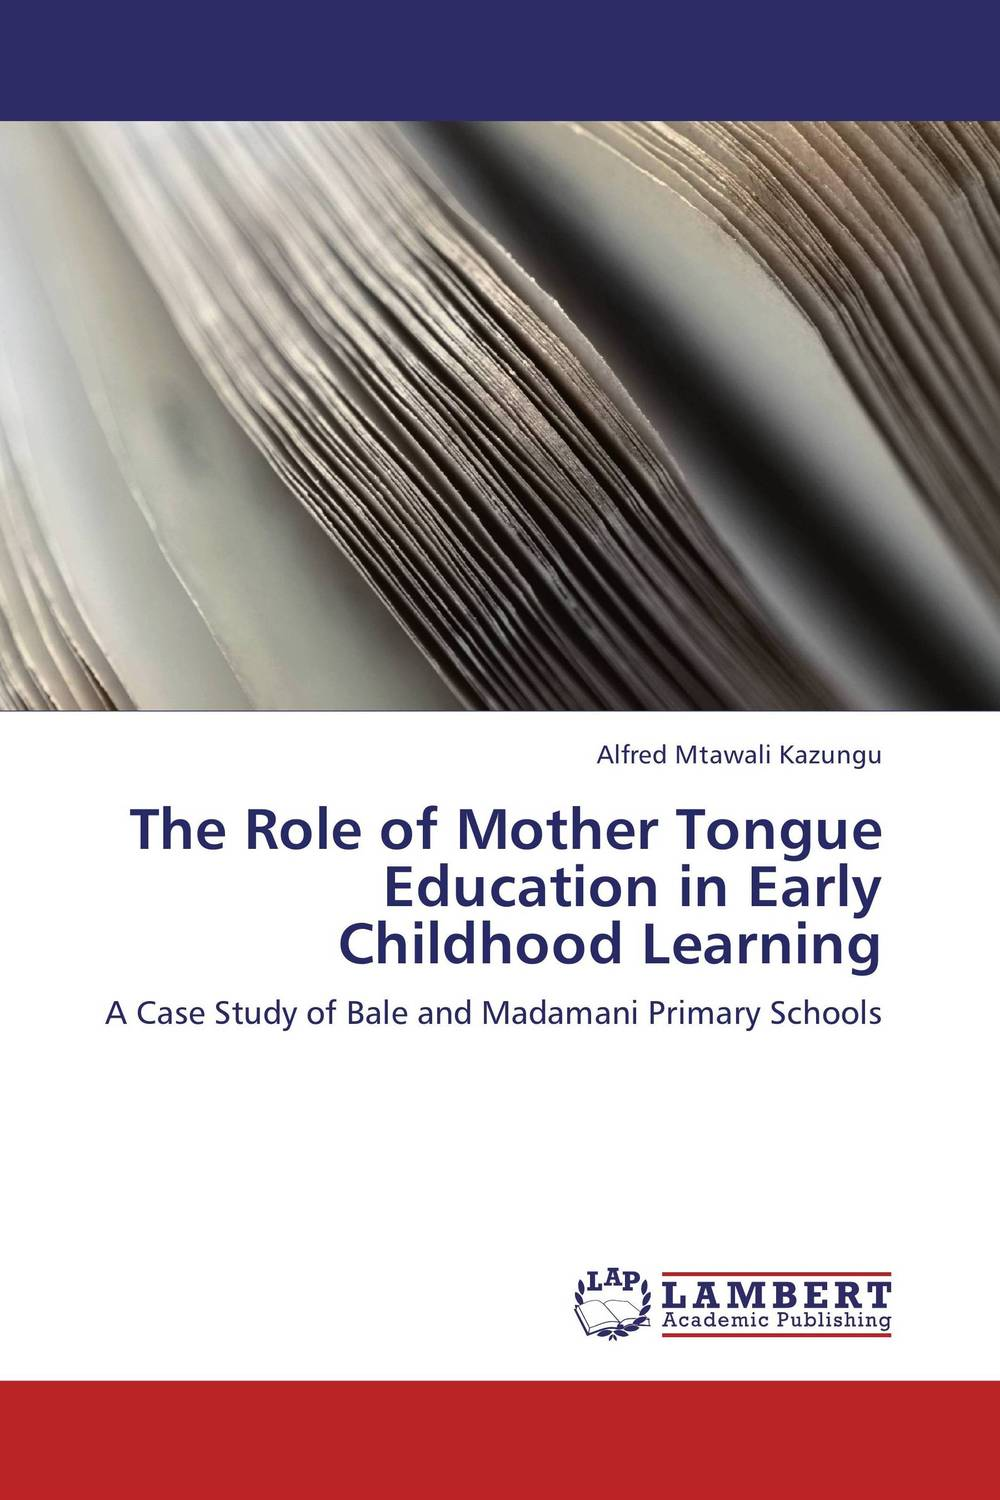 The Role of Mother Tongue Education in Early Childhood Learning the role of writing in undergraduate design education in the uk